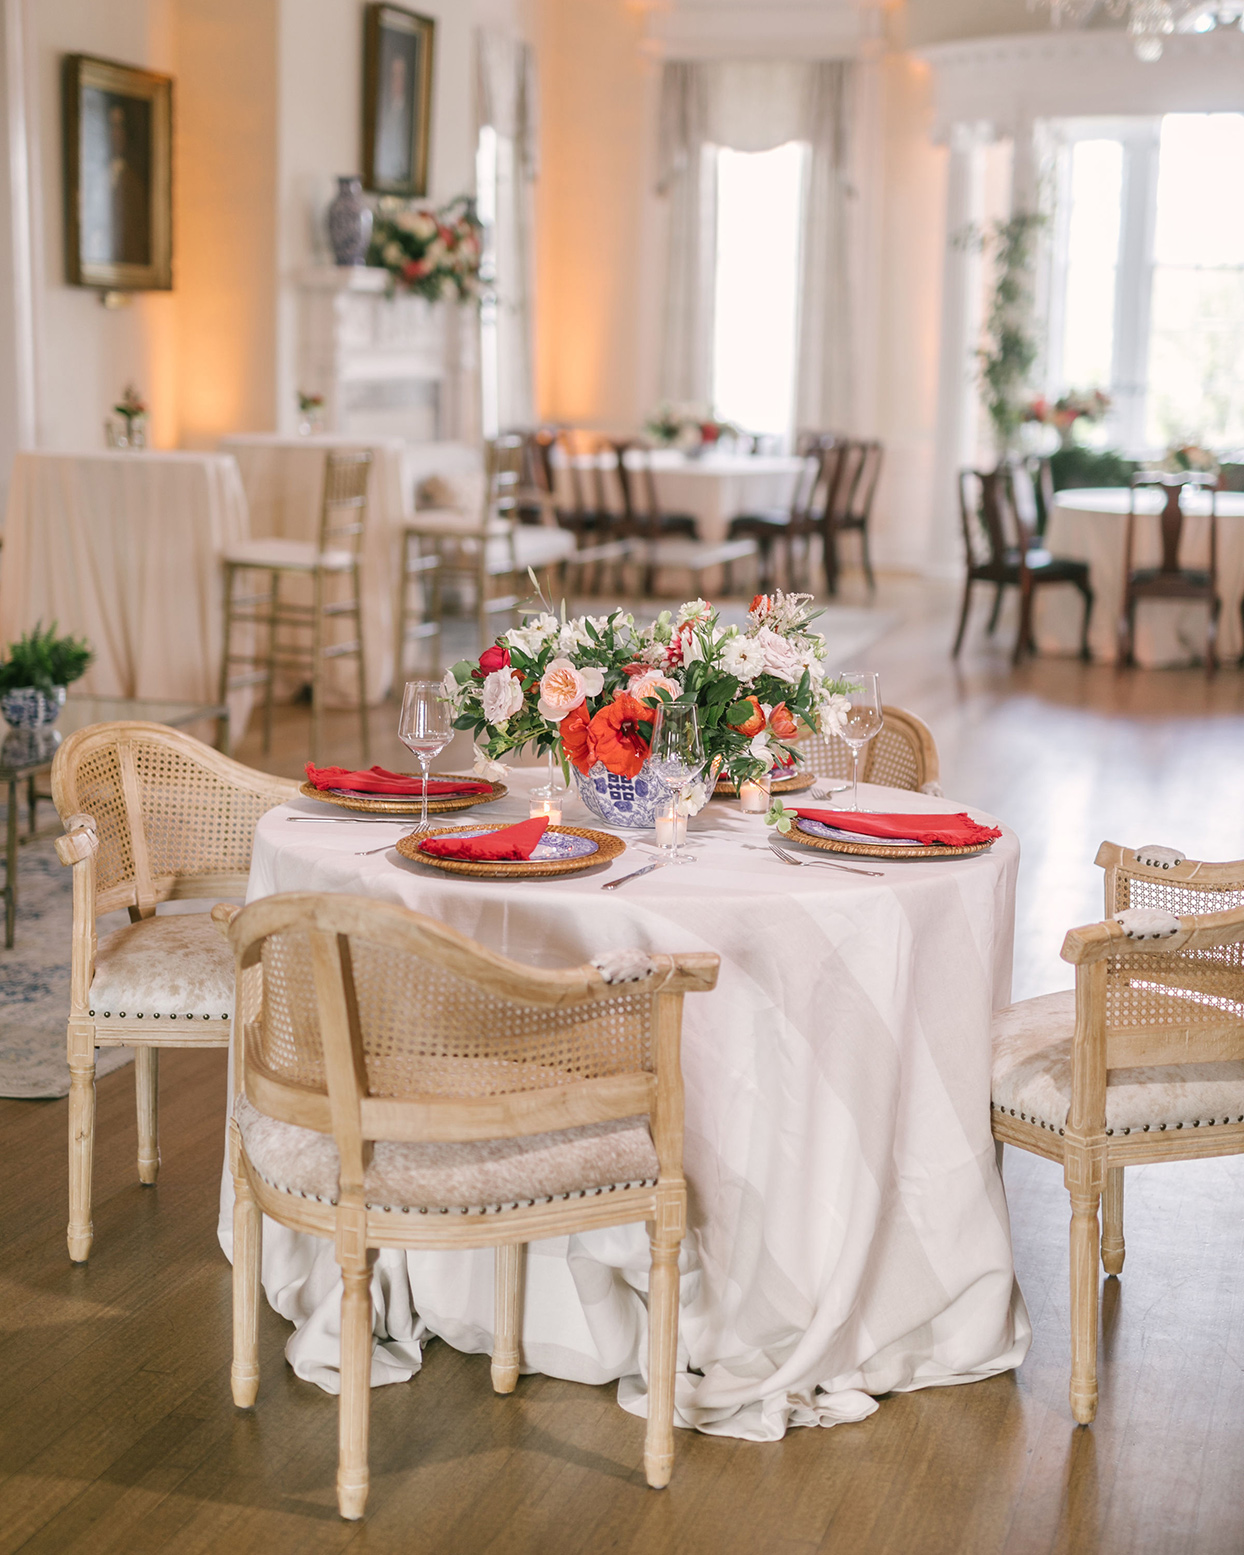 beverly steve wedding reception table with floral centerpiece